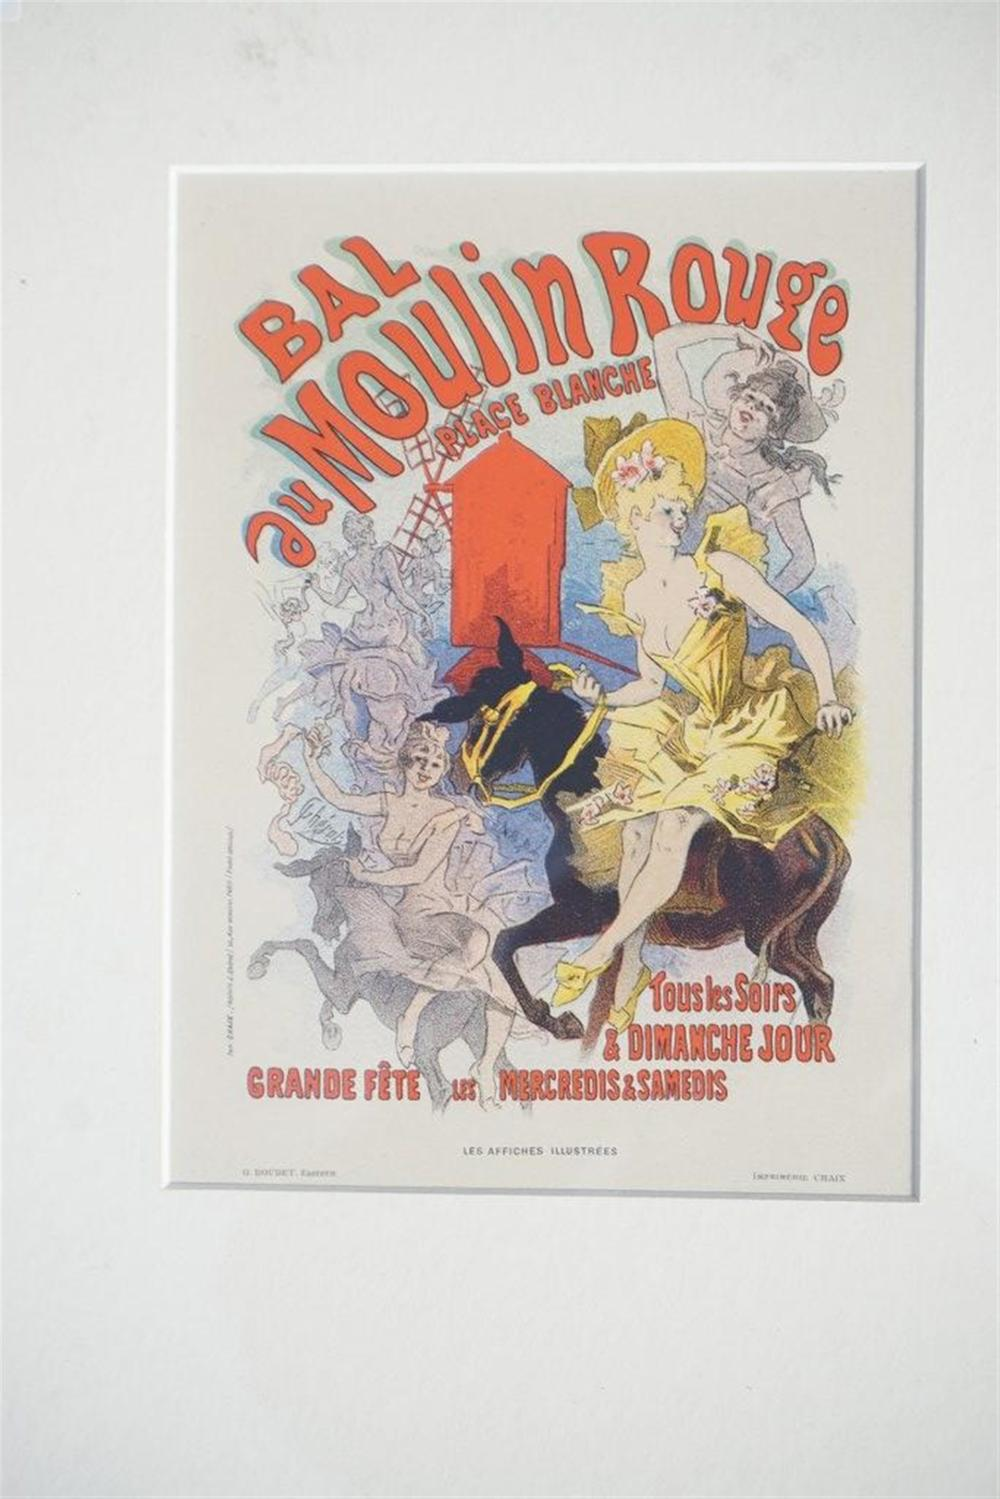 "1896 CHERET BAL AU MOULIN ROUGE STONE LITHO POSTER, SHEET SIZE 8 3/4"" X 12 1/4"", EXCELLENT CONDITION, SHRINK WRAPPED AND MATTED, FROM RETIRED COLLECTORS COLLECTION. IMPRIMERIE CHAIX."